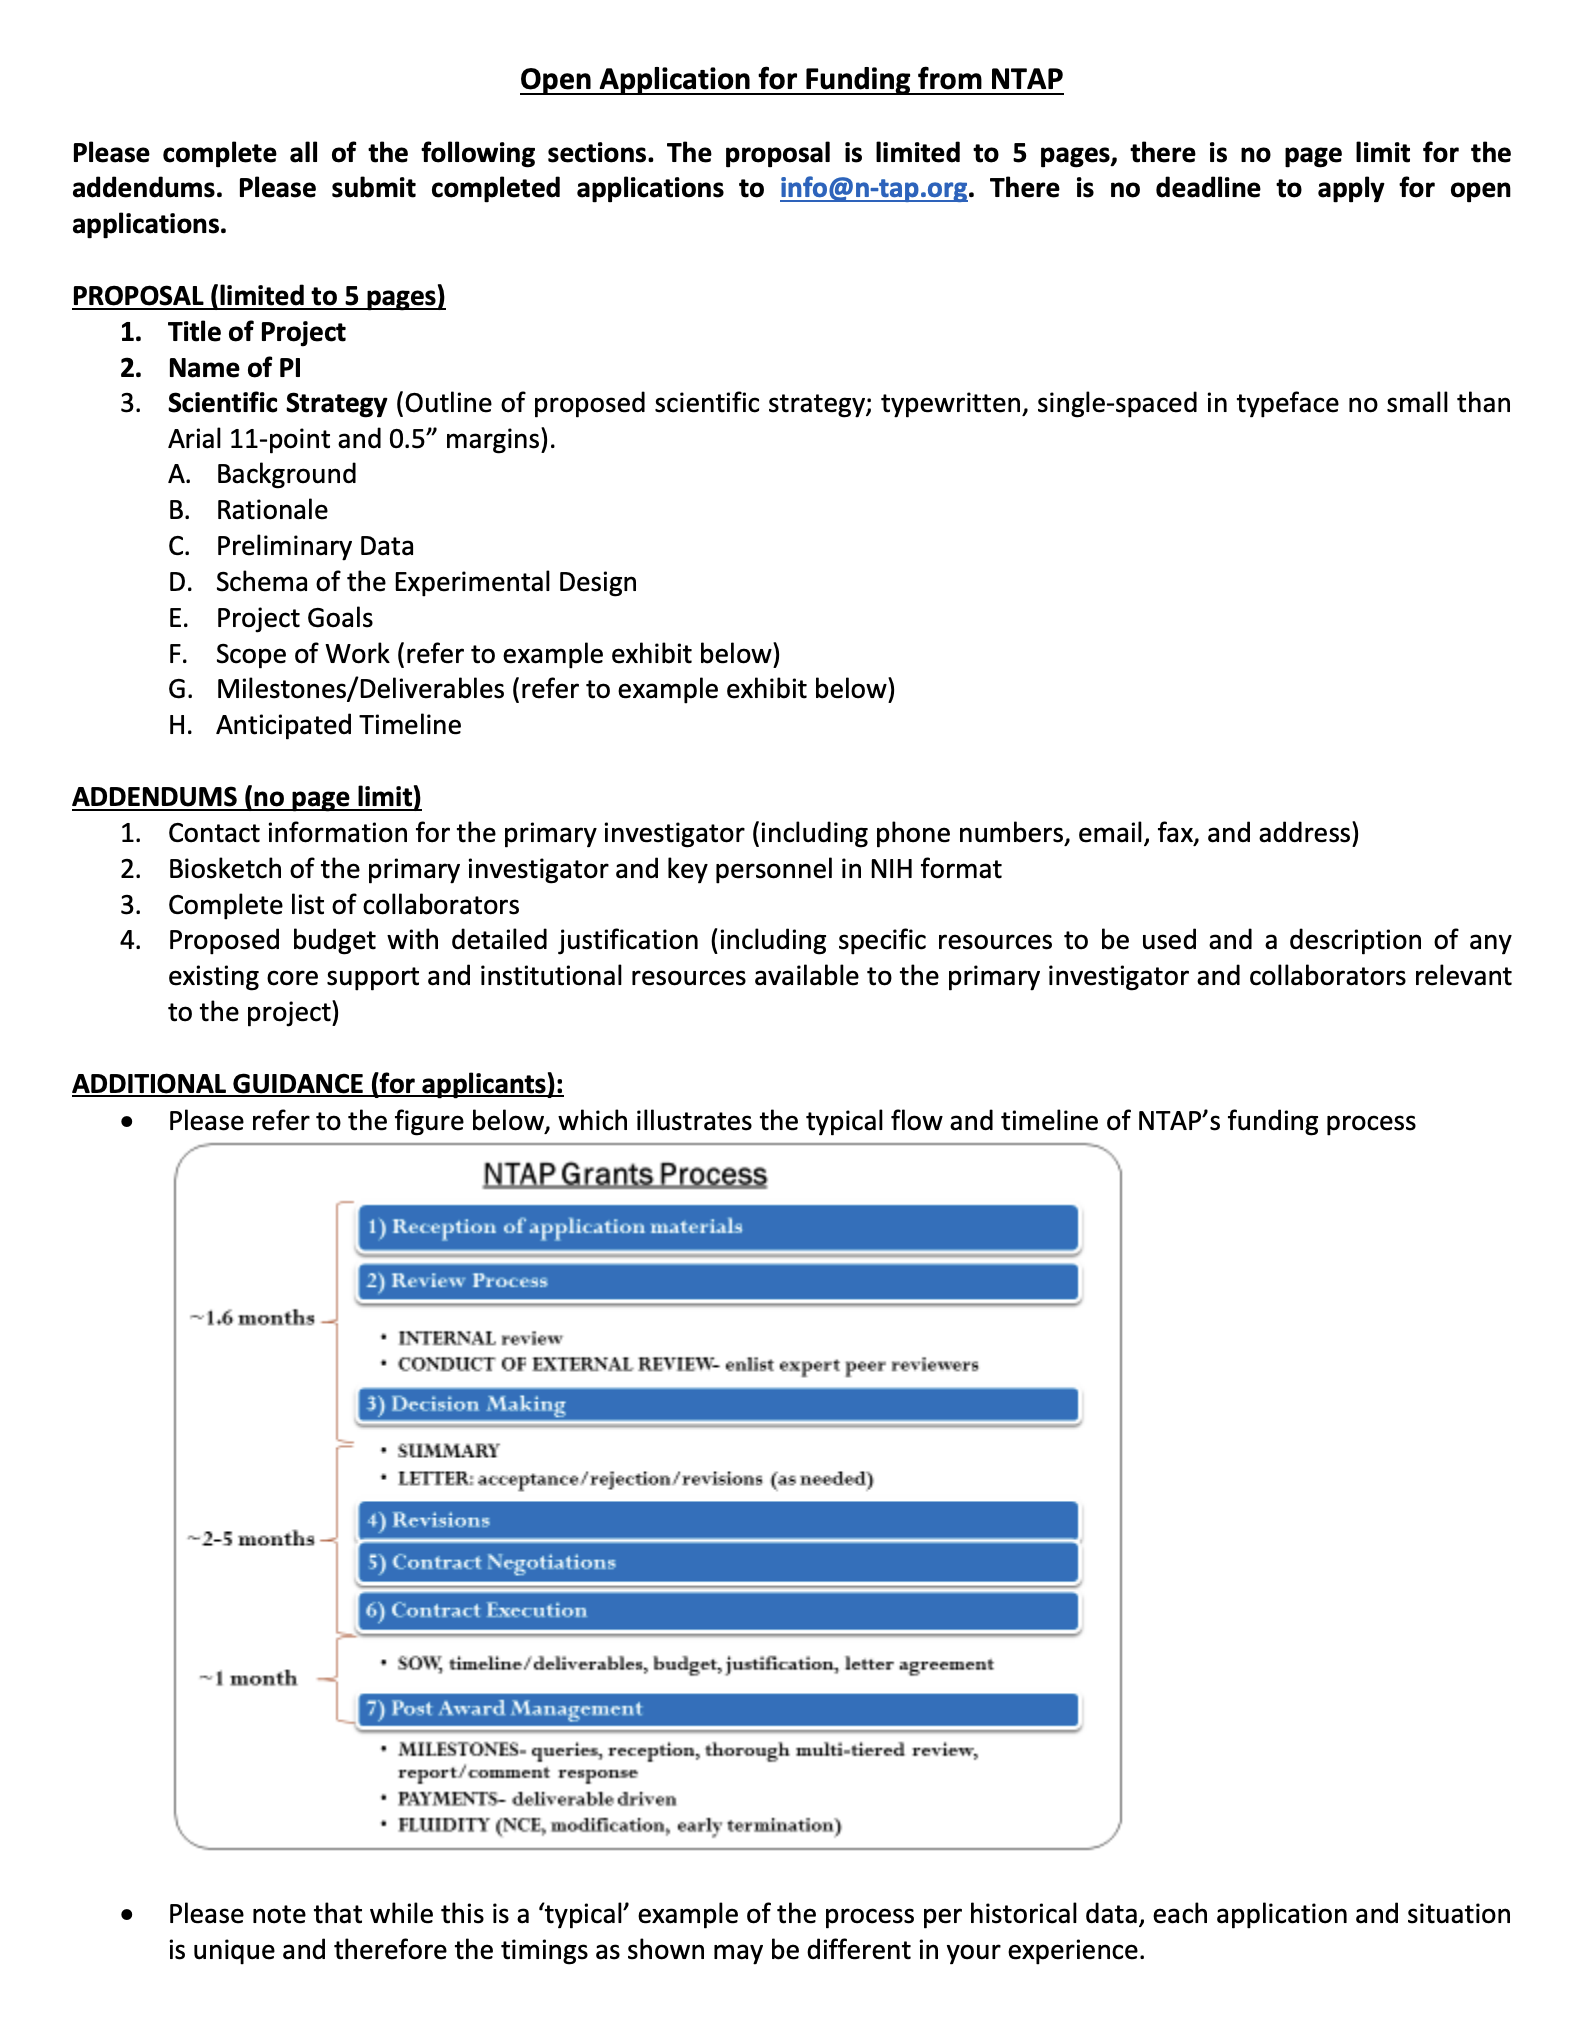 OPEN APPLICATION GUIDELINE FORM